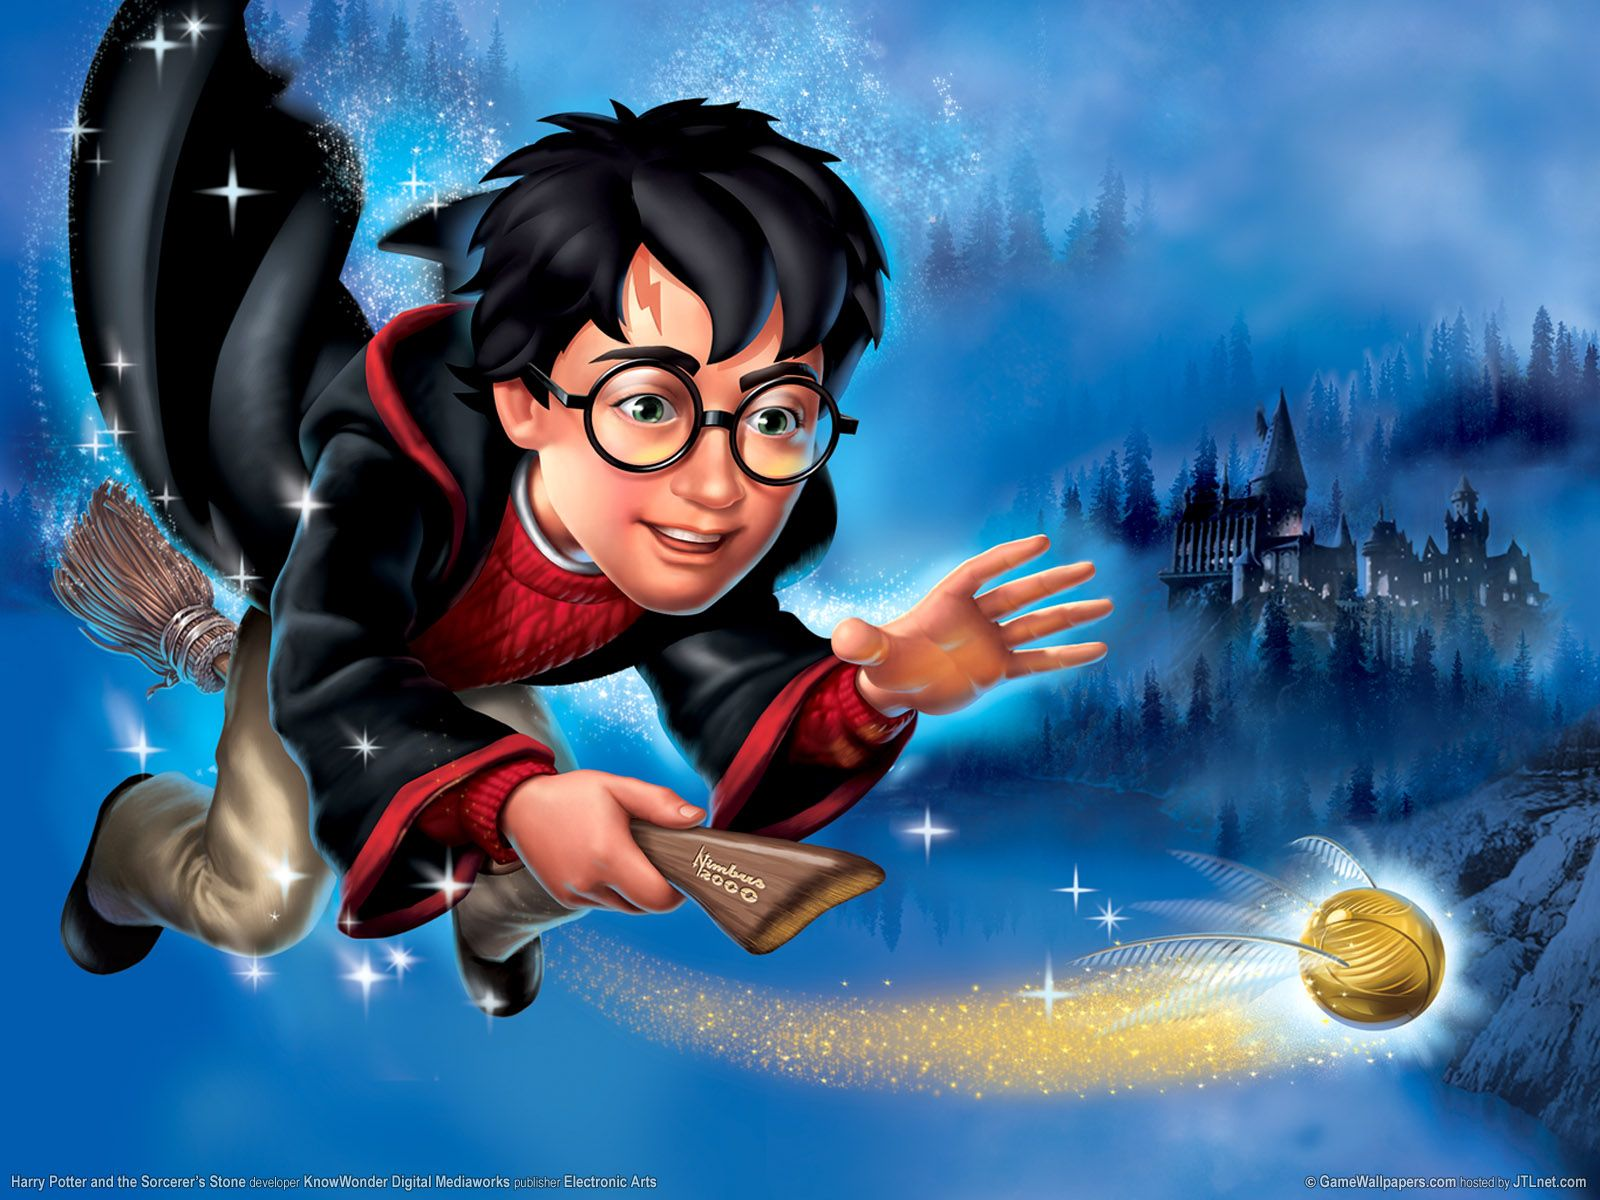 Image from http://images6.fanpop.com/image/photos/34900000/hp-harry-potter-34907852-1600-1200.jpg.